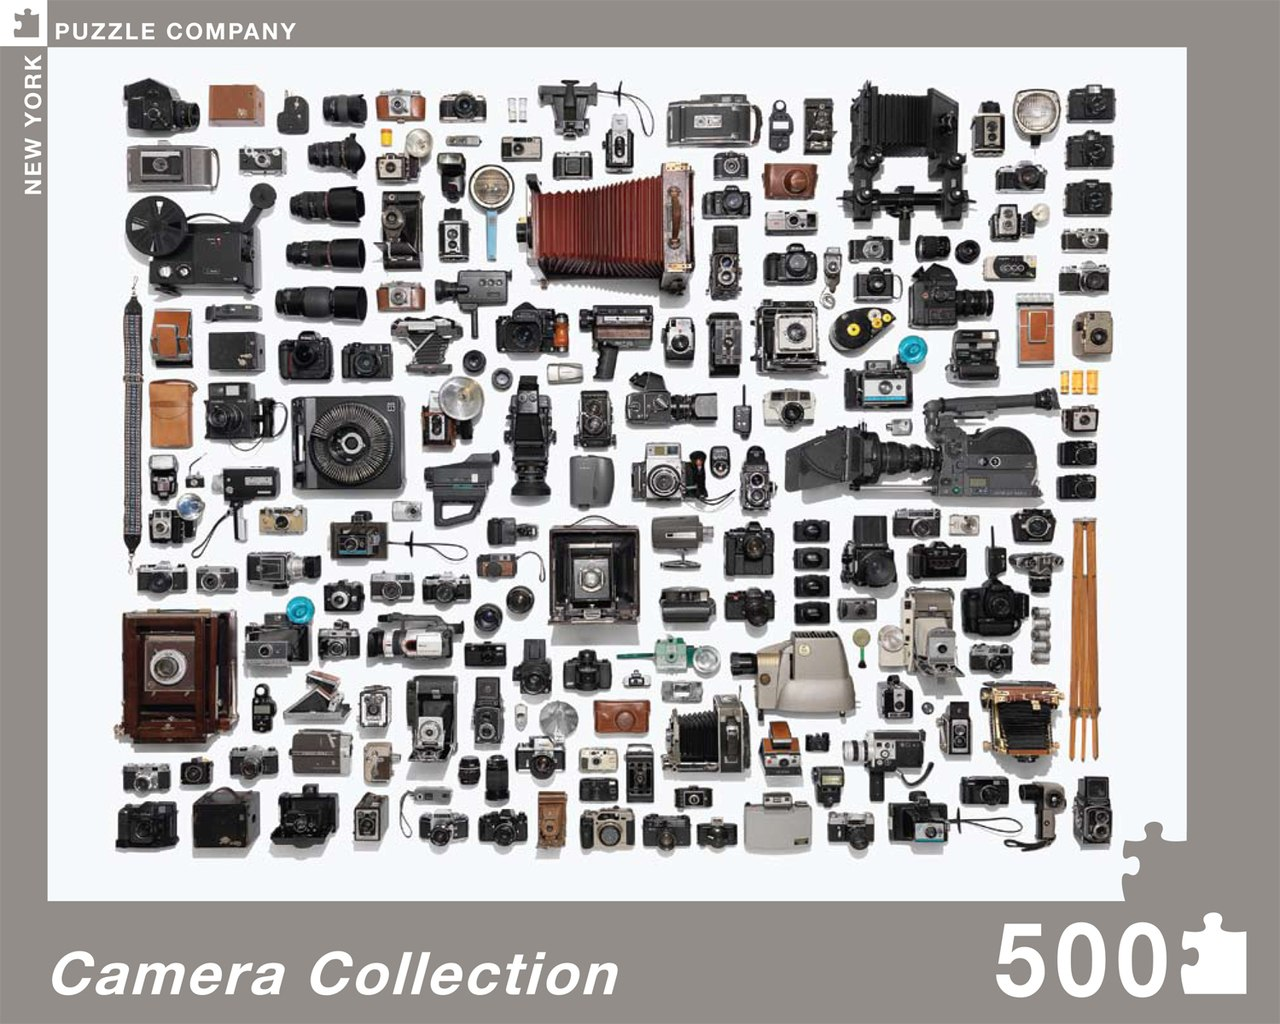 Camera Collection - 500pc Jigsaw Puzzle by New York Puzzle Company